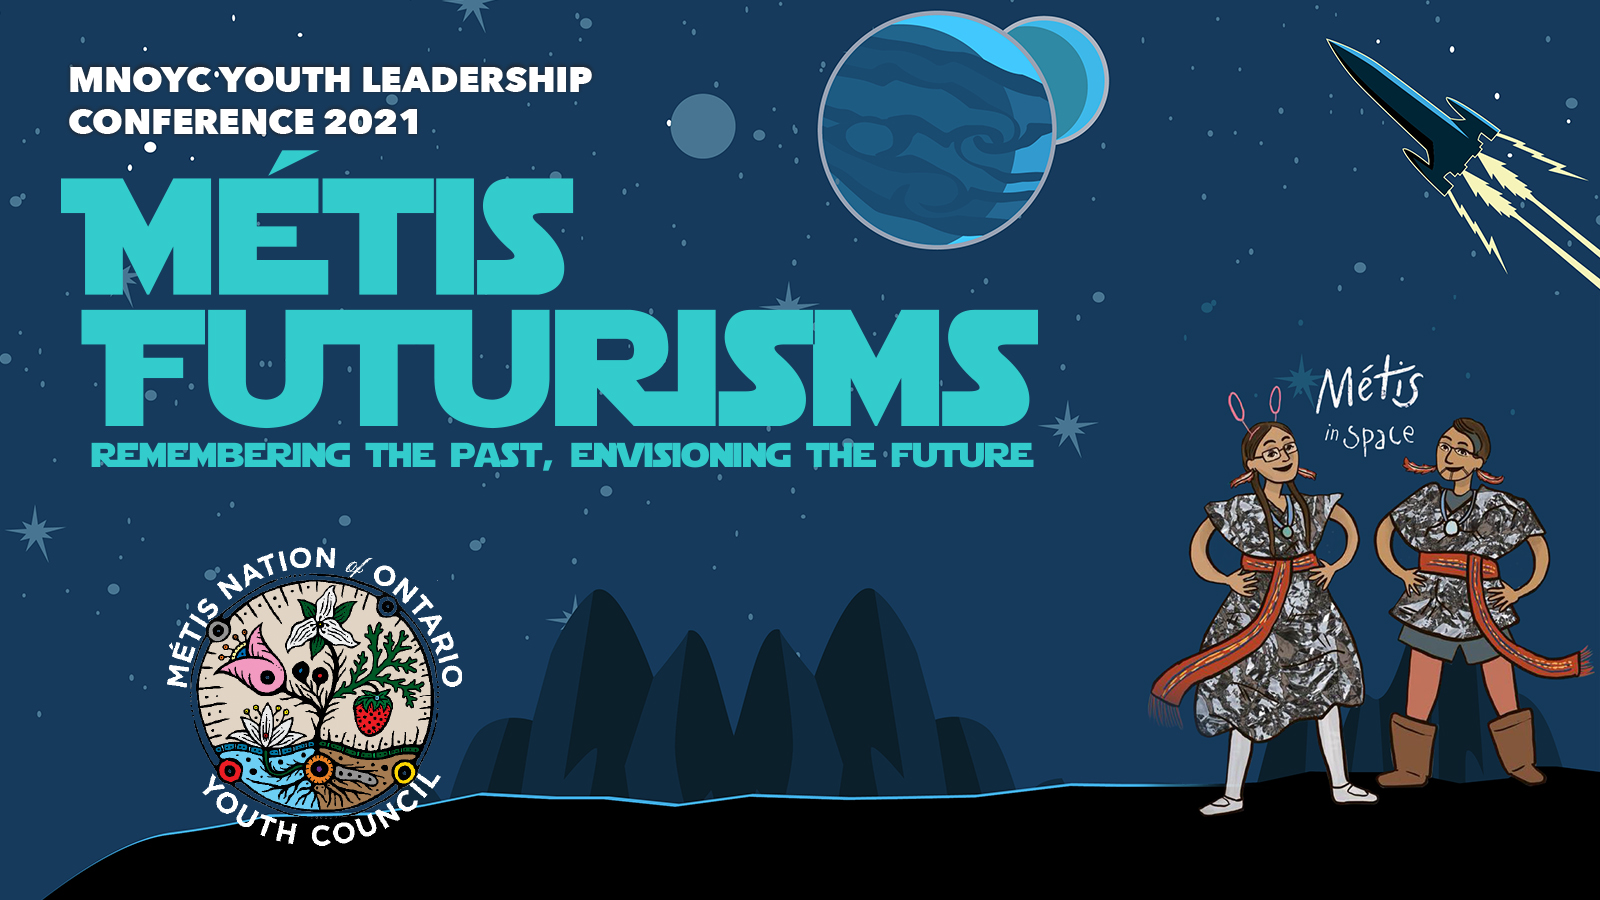 MNOYC Youth Leadership Conference 2021 - Métis Futurisms Remembering the past, envisioning the future